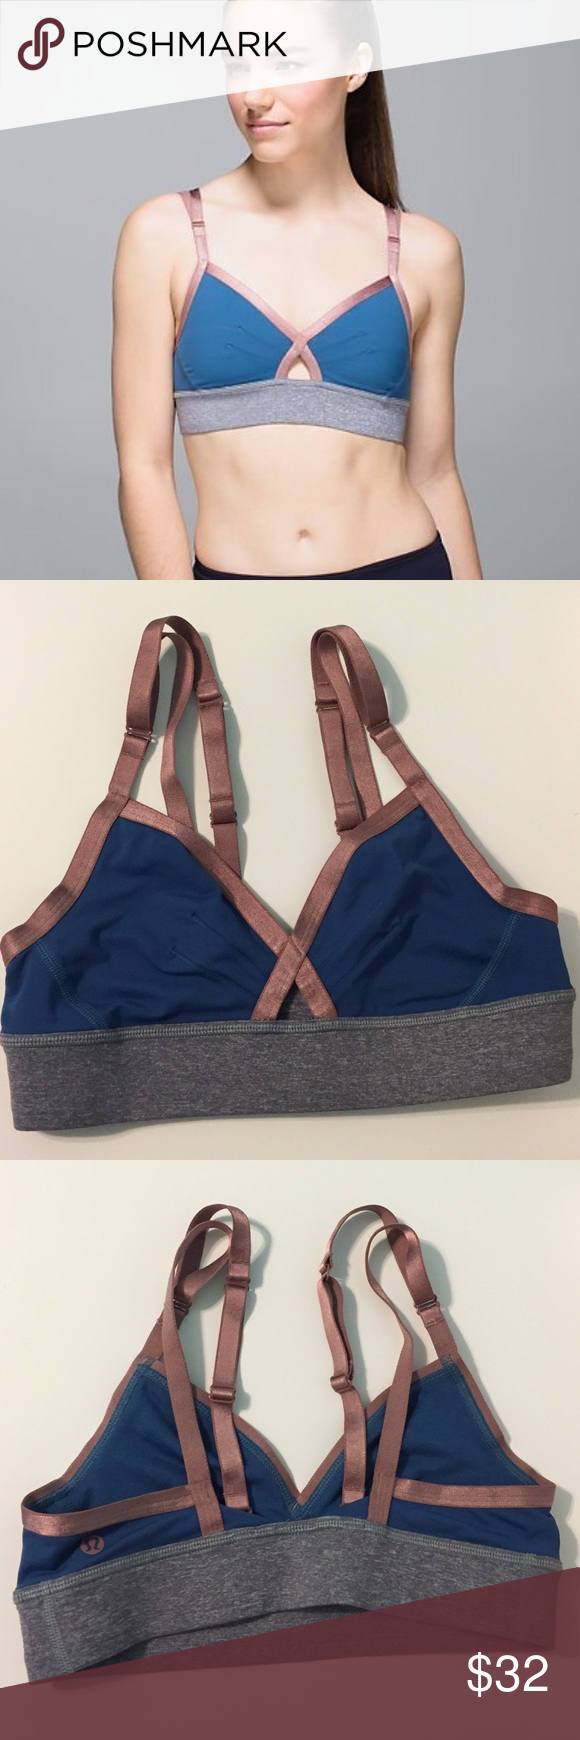 Lululemon If You're Lucky Bra Cute Lululemon bra worn once! Dot confirmed size 6. Just doesn't work for me while I'm breastfeeding and need to find a different Lulu bra! lululemon athletica Intimates & Sleepwear Bras